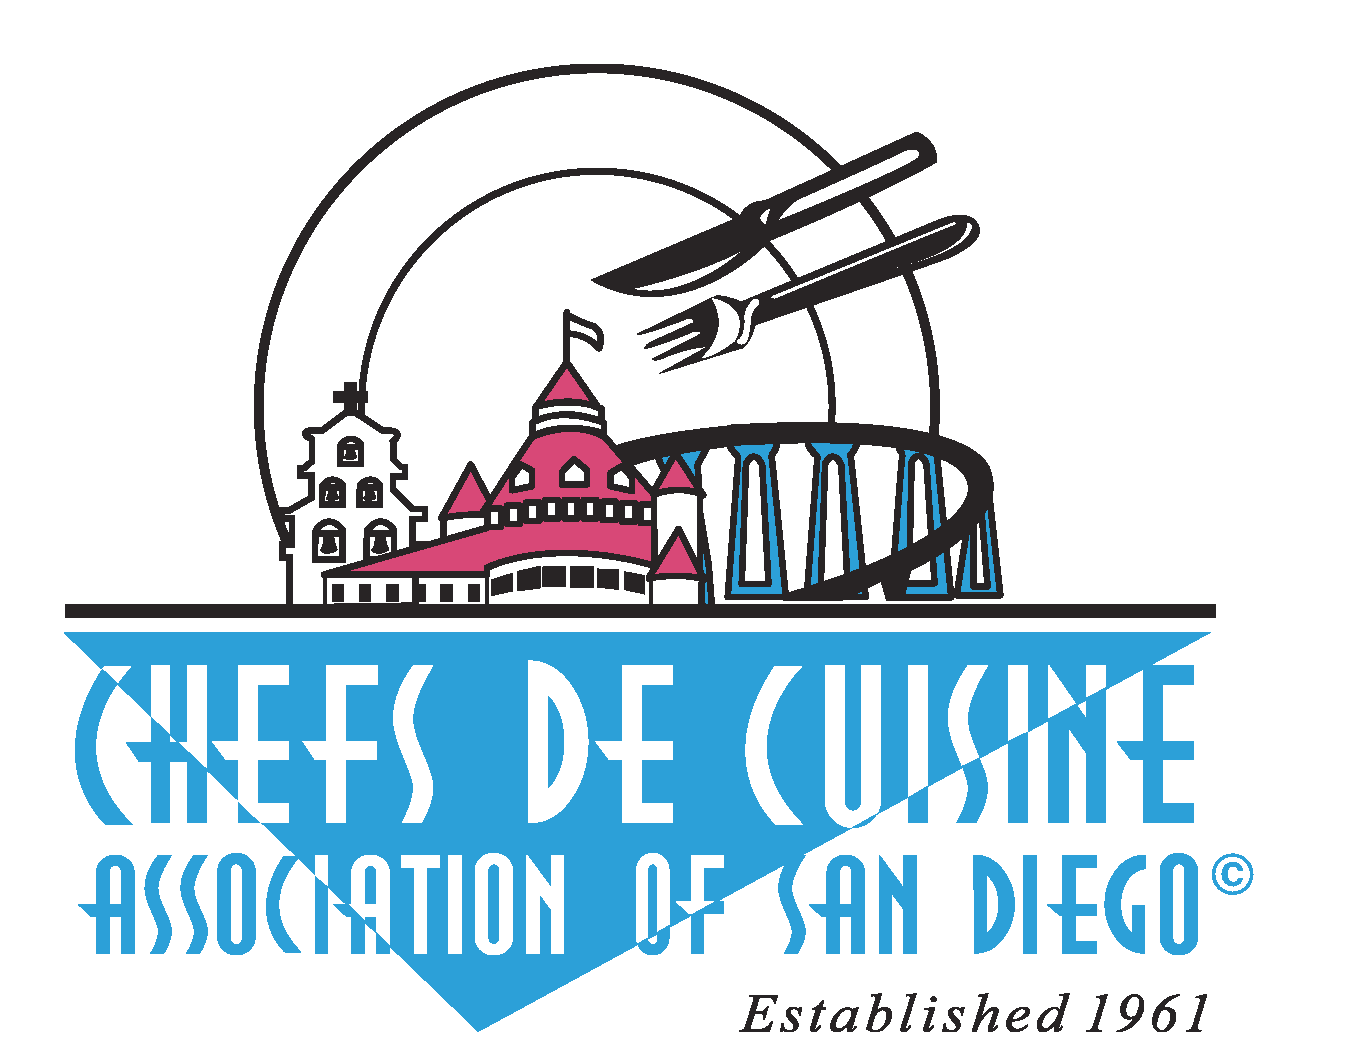 The Chefs De Cuisine Association of San Diego